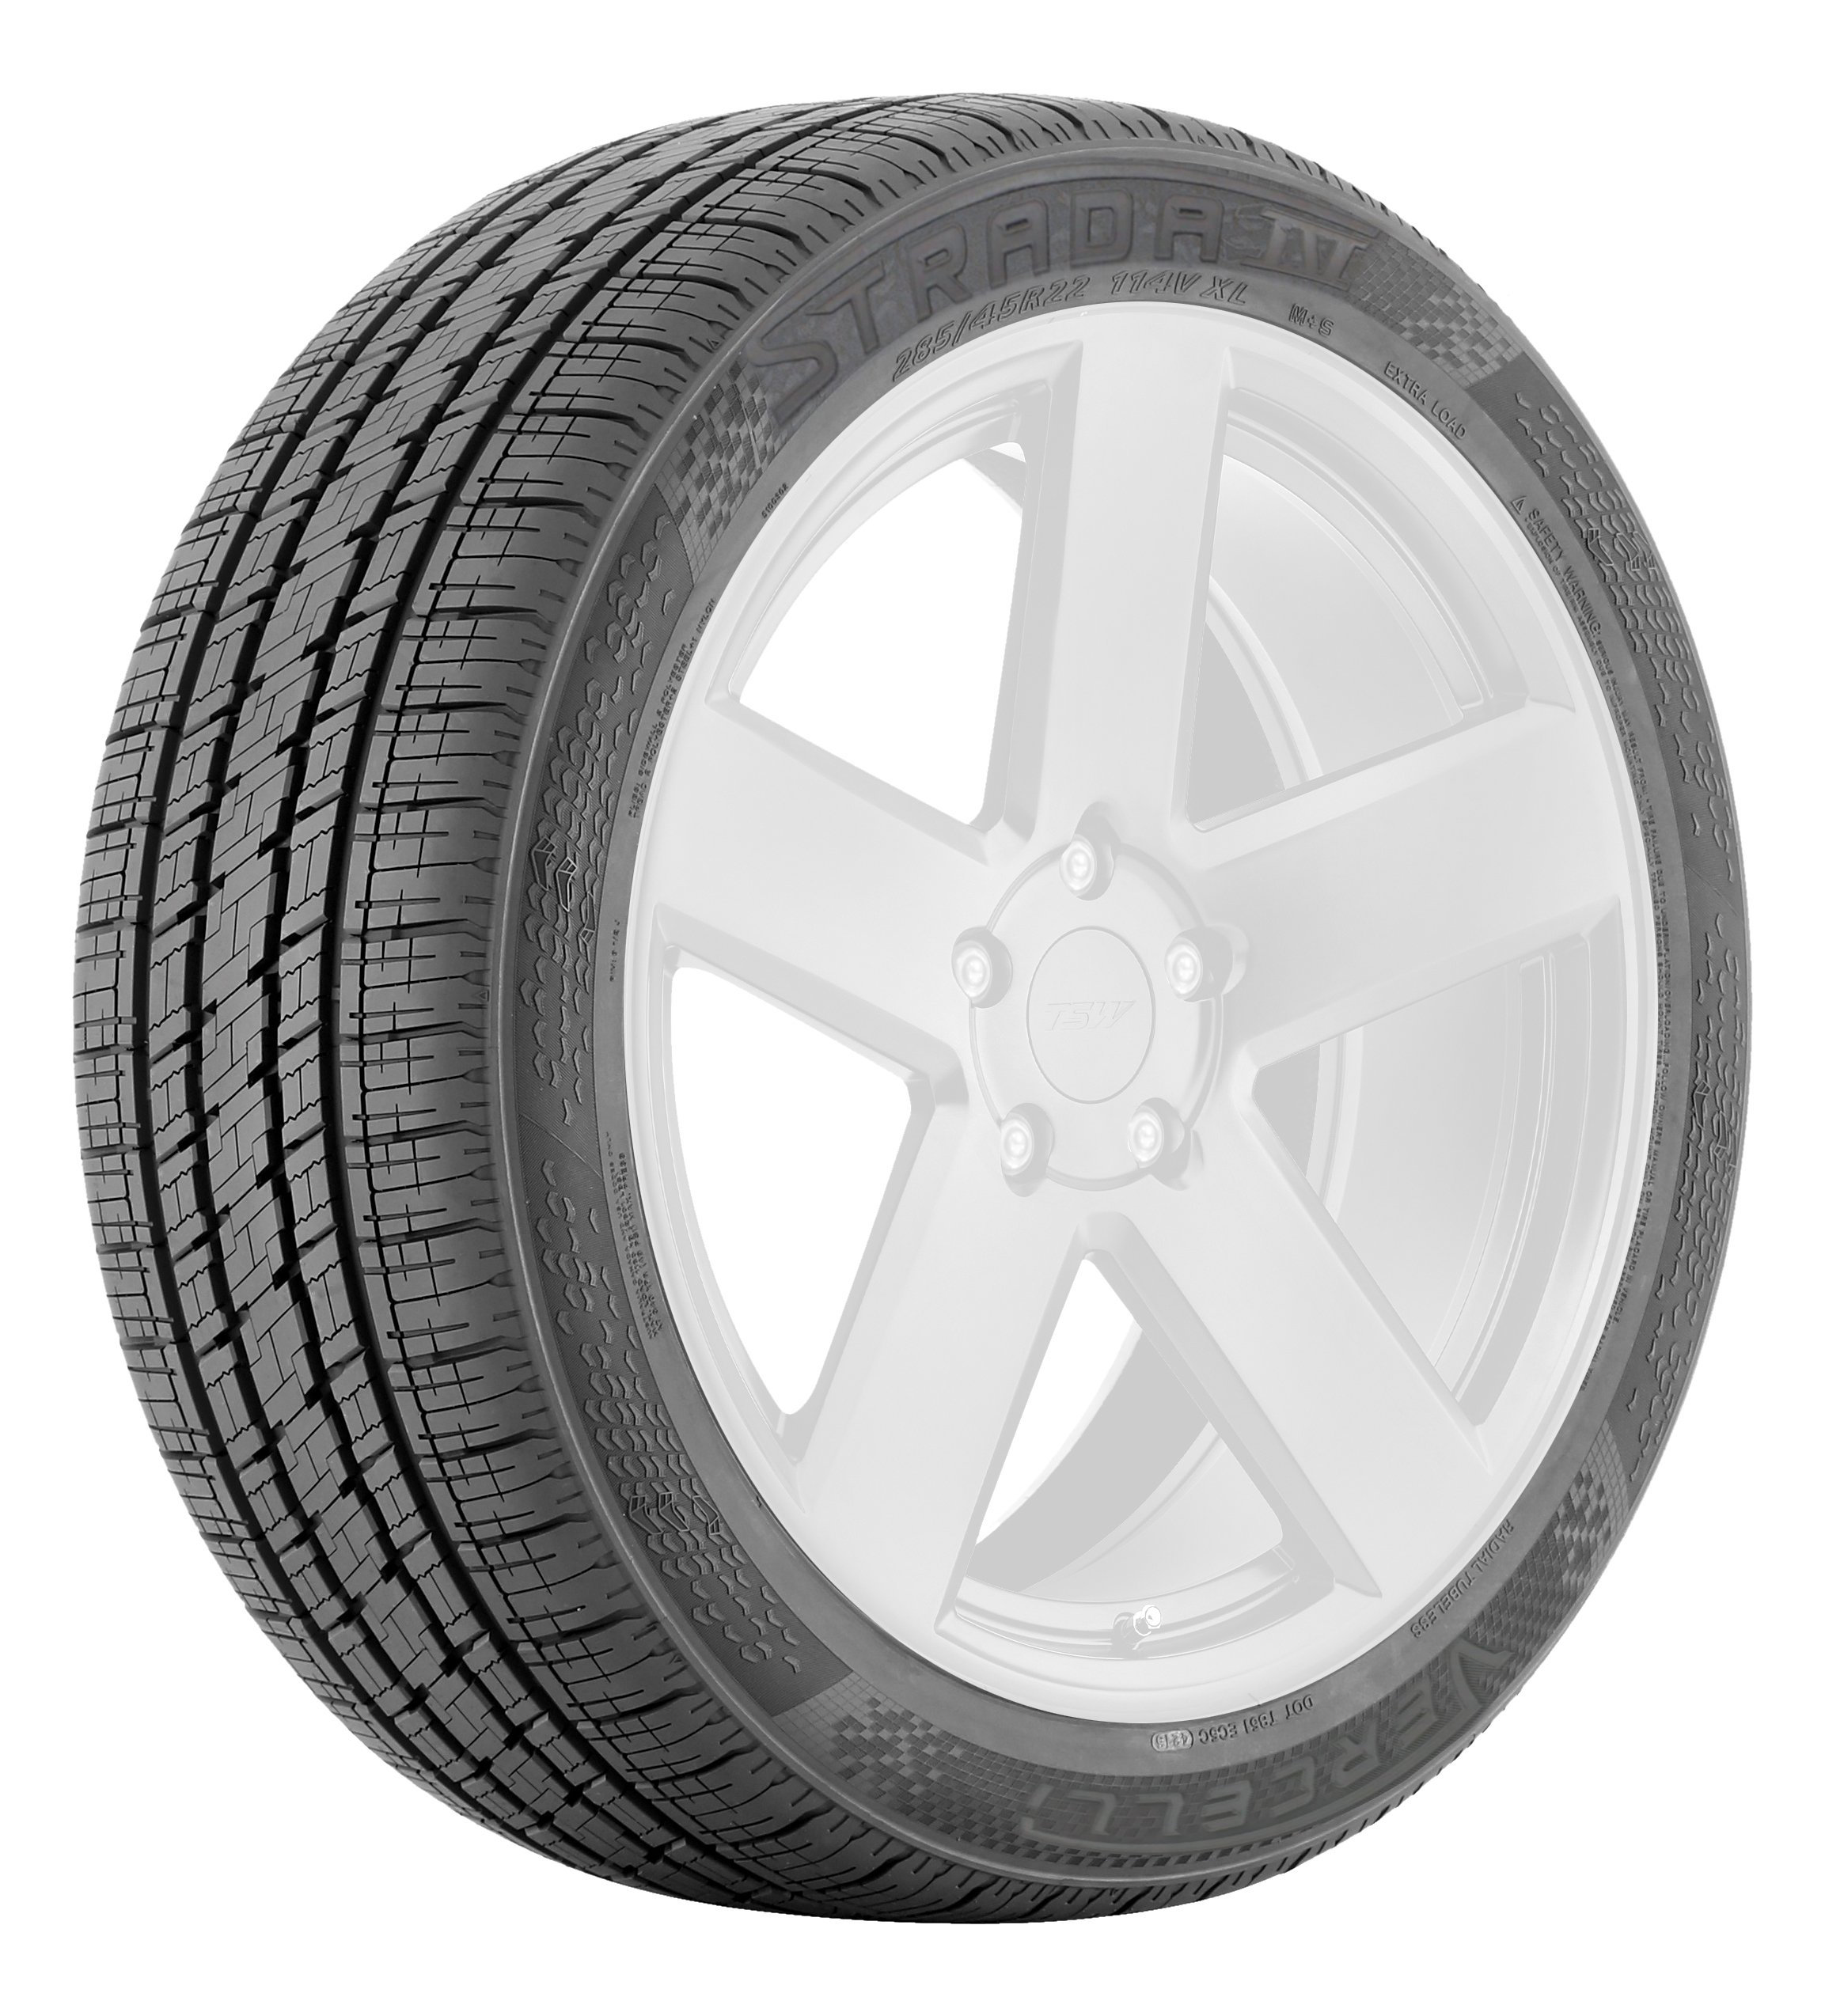 Vercelli Strada IV All-Season Radial Tire - 295/30R22 103W